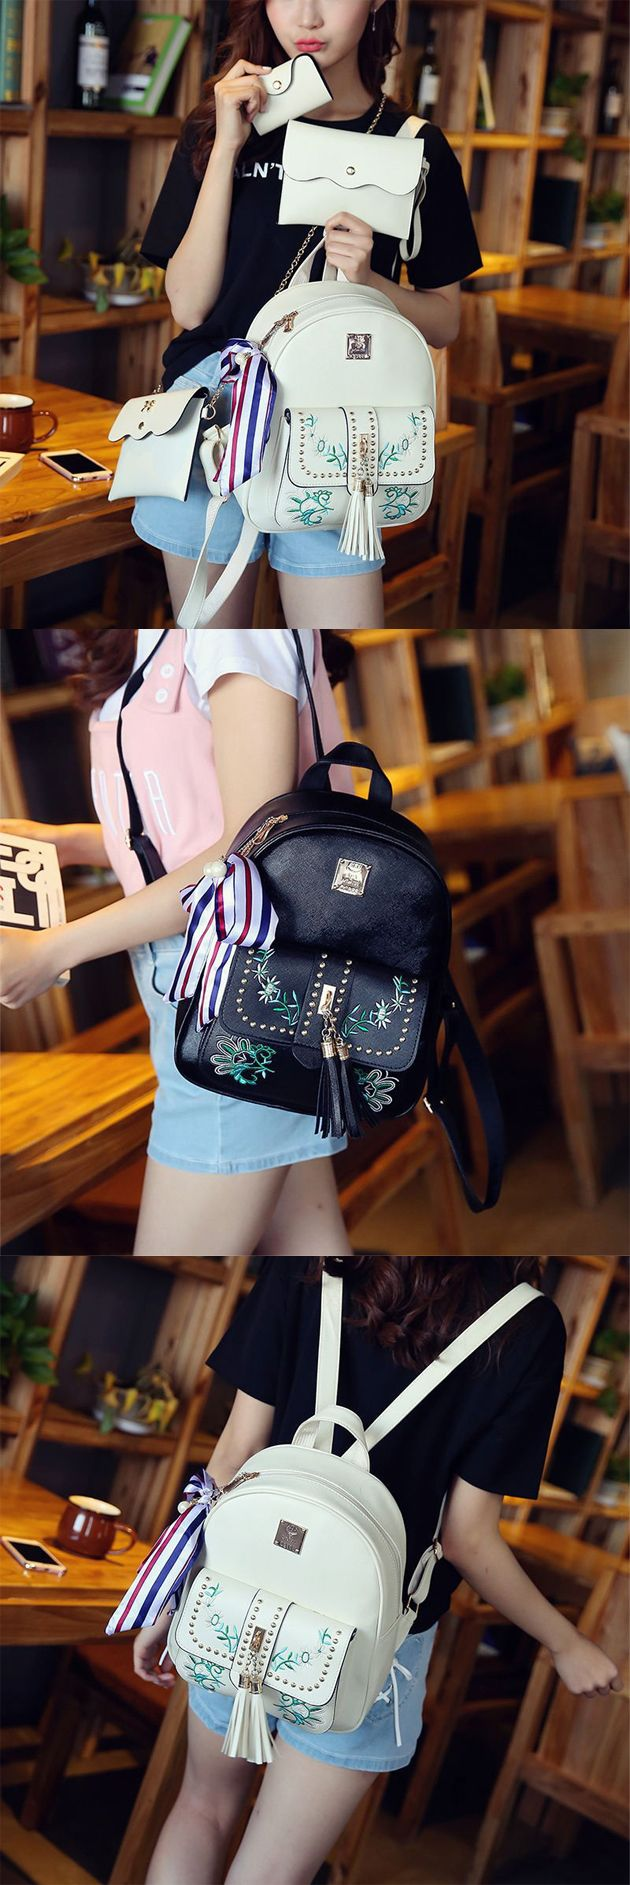 Sweet Leaves Embroidery Tassel Rivets Flowers PU School Backpack for Girls backpack men fashion,backpack men fashion style,backpack men fashion canvases,backpack men's laptop,school bags,school bags tote handbags,school bags tote style,school bags for teens,school bags for teens backpacks,school bags for teens backpacks student,school bags for teens backpacks black,school bags for teens backpacks casual,school bags for teens backpacks vintage,school bags for teens handbags,